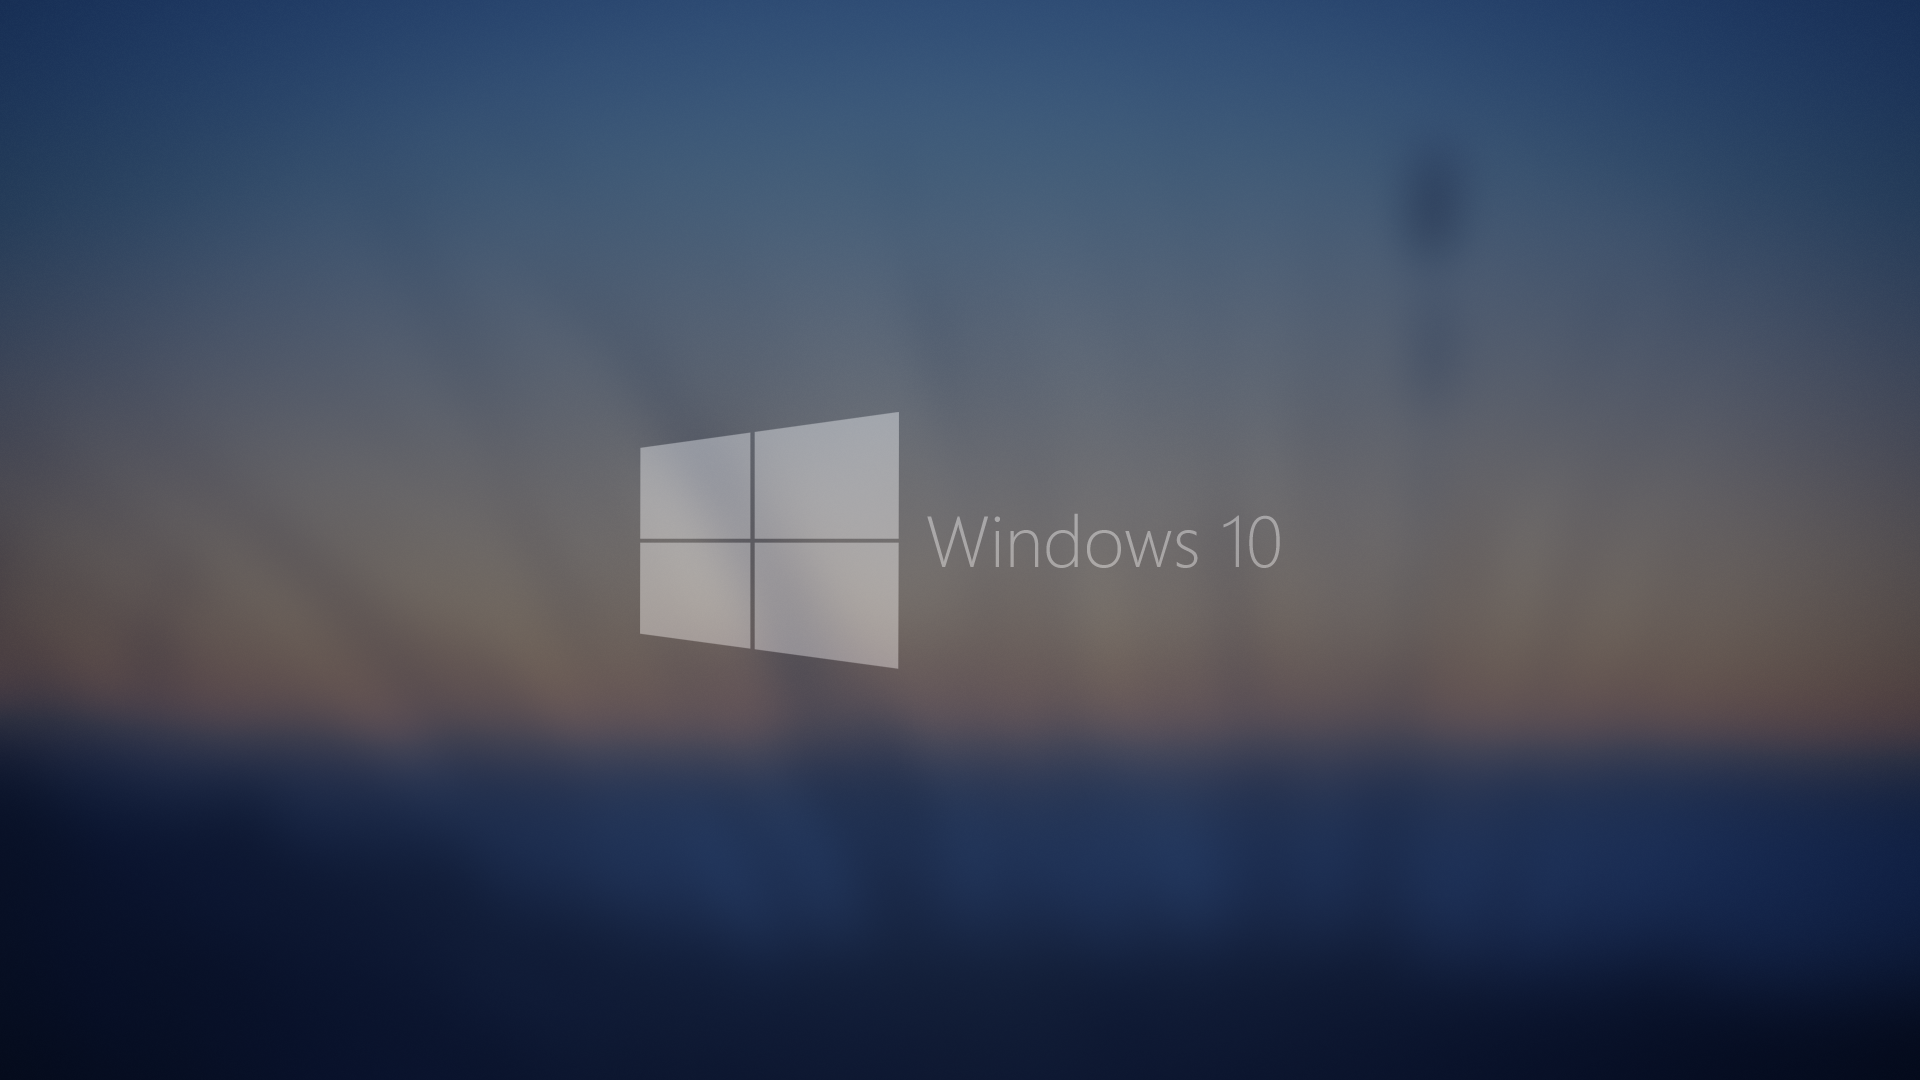 Windows 10 Blurred Background Wallpapers Hd Wallpapers